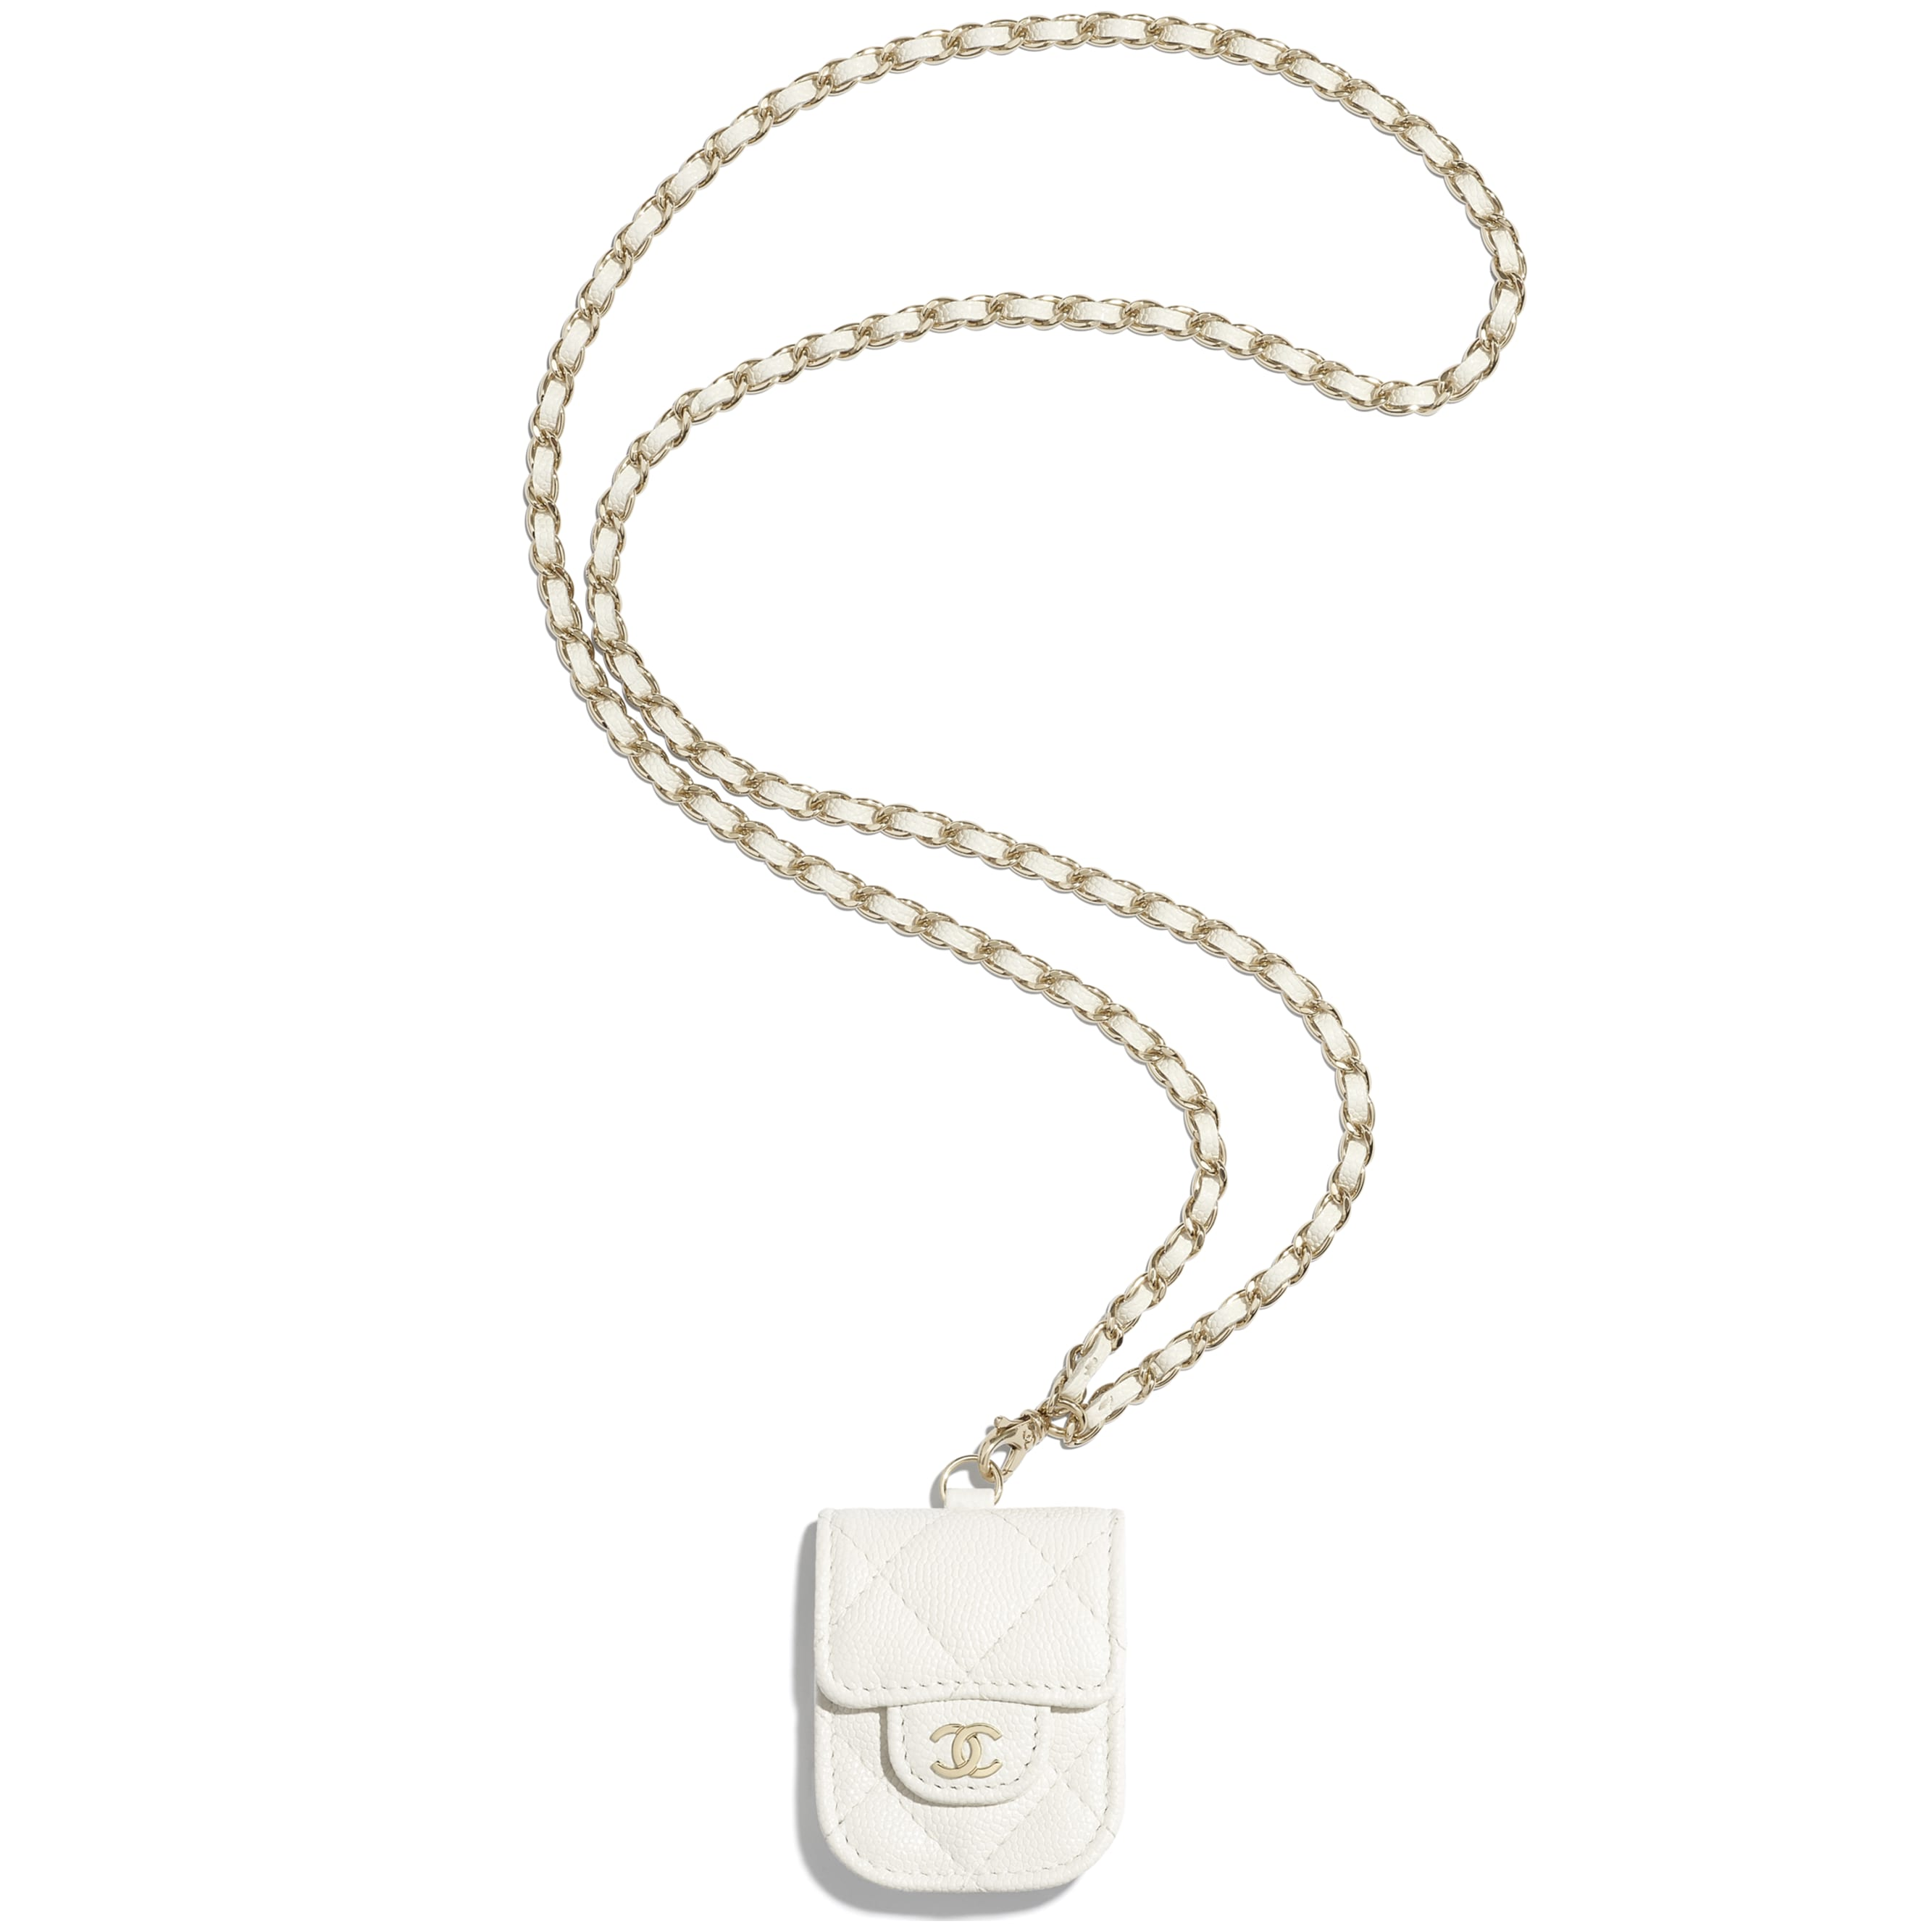 AirPods Case - White - Grained Calfskin & Gold-Tone Metal - CHANEL - Default view - see standard sized version